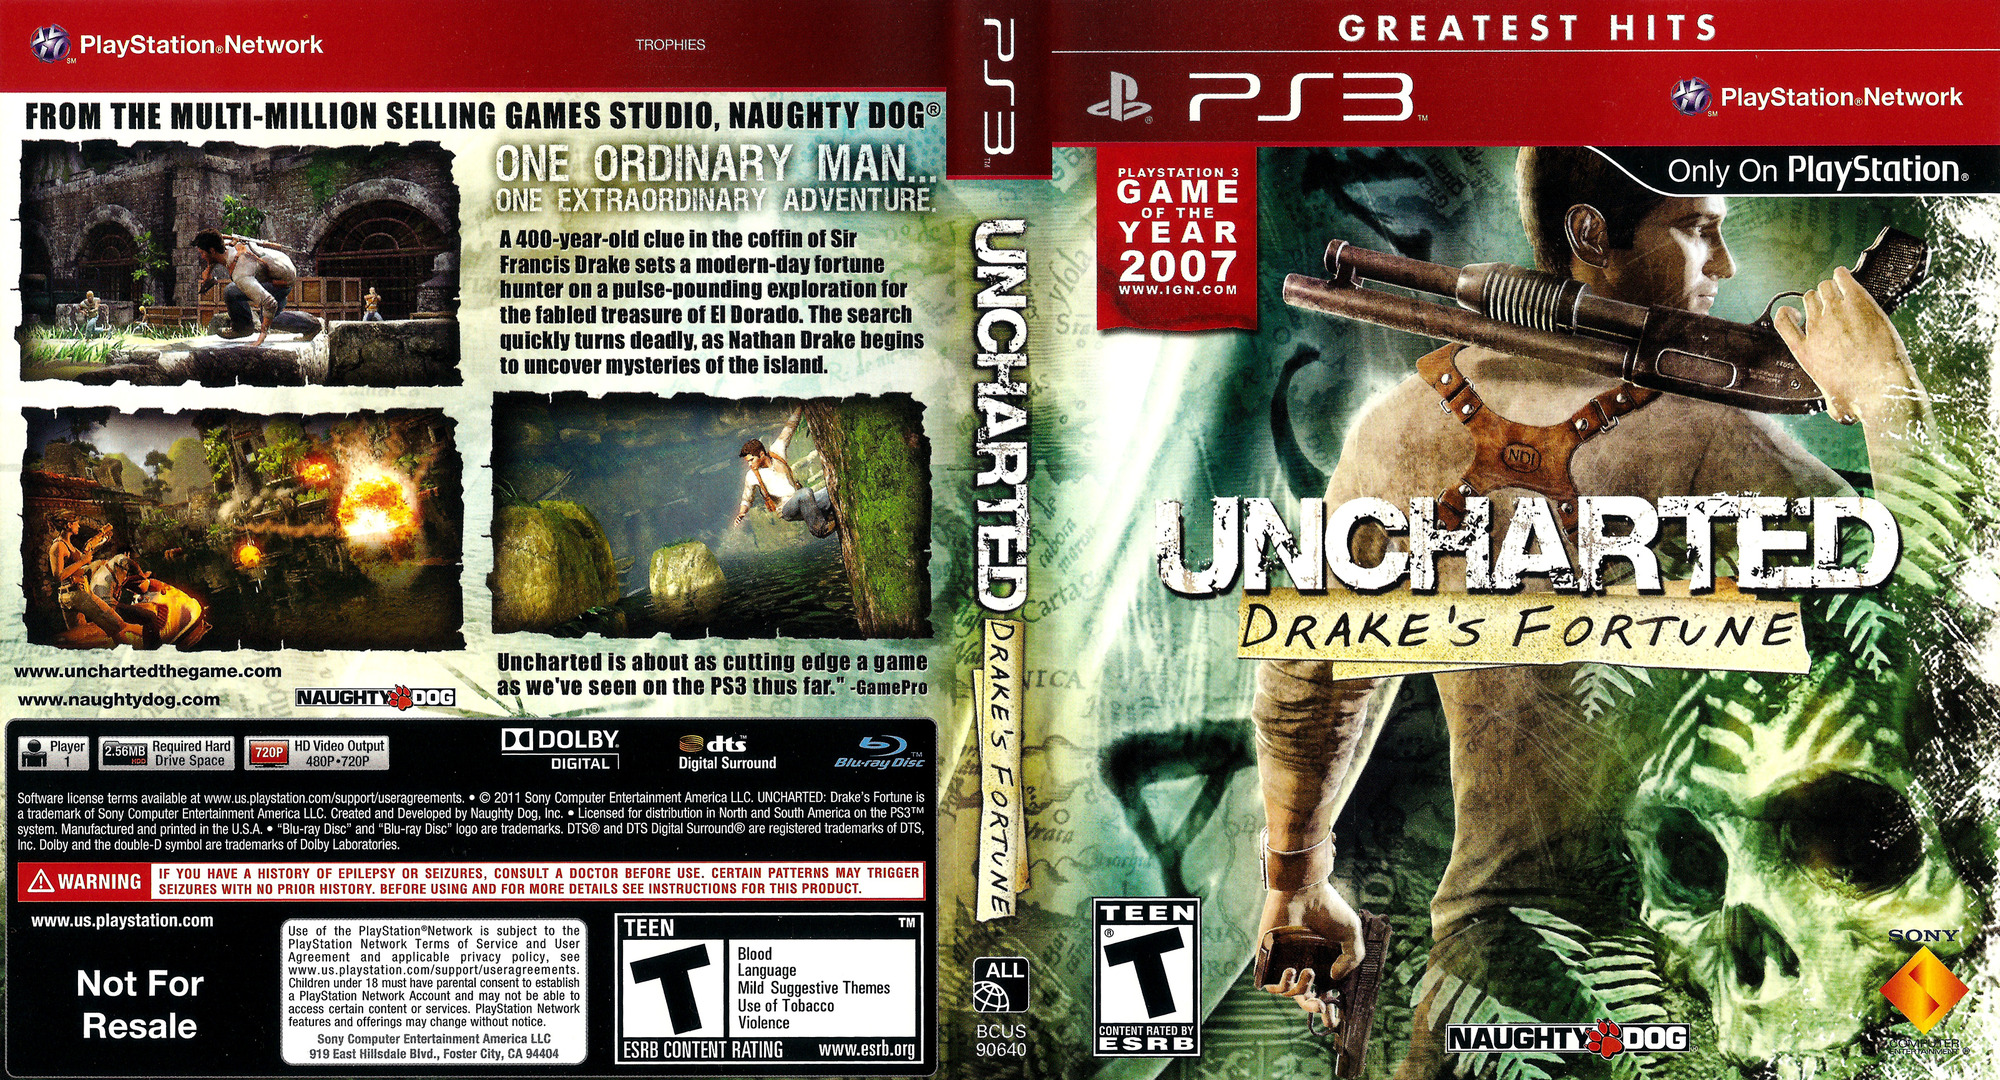 Bcus90640 Uncharted Drake S Fortune Greatest Hits